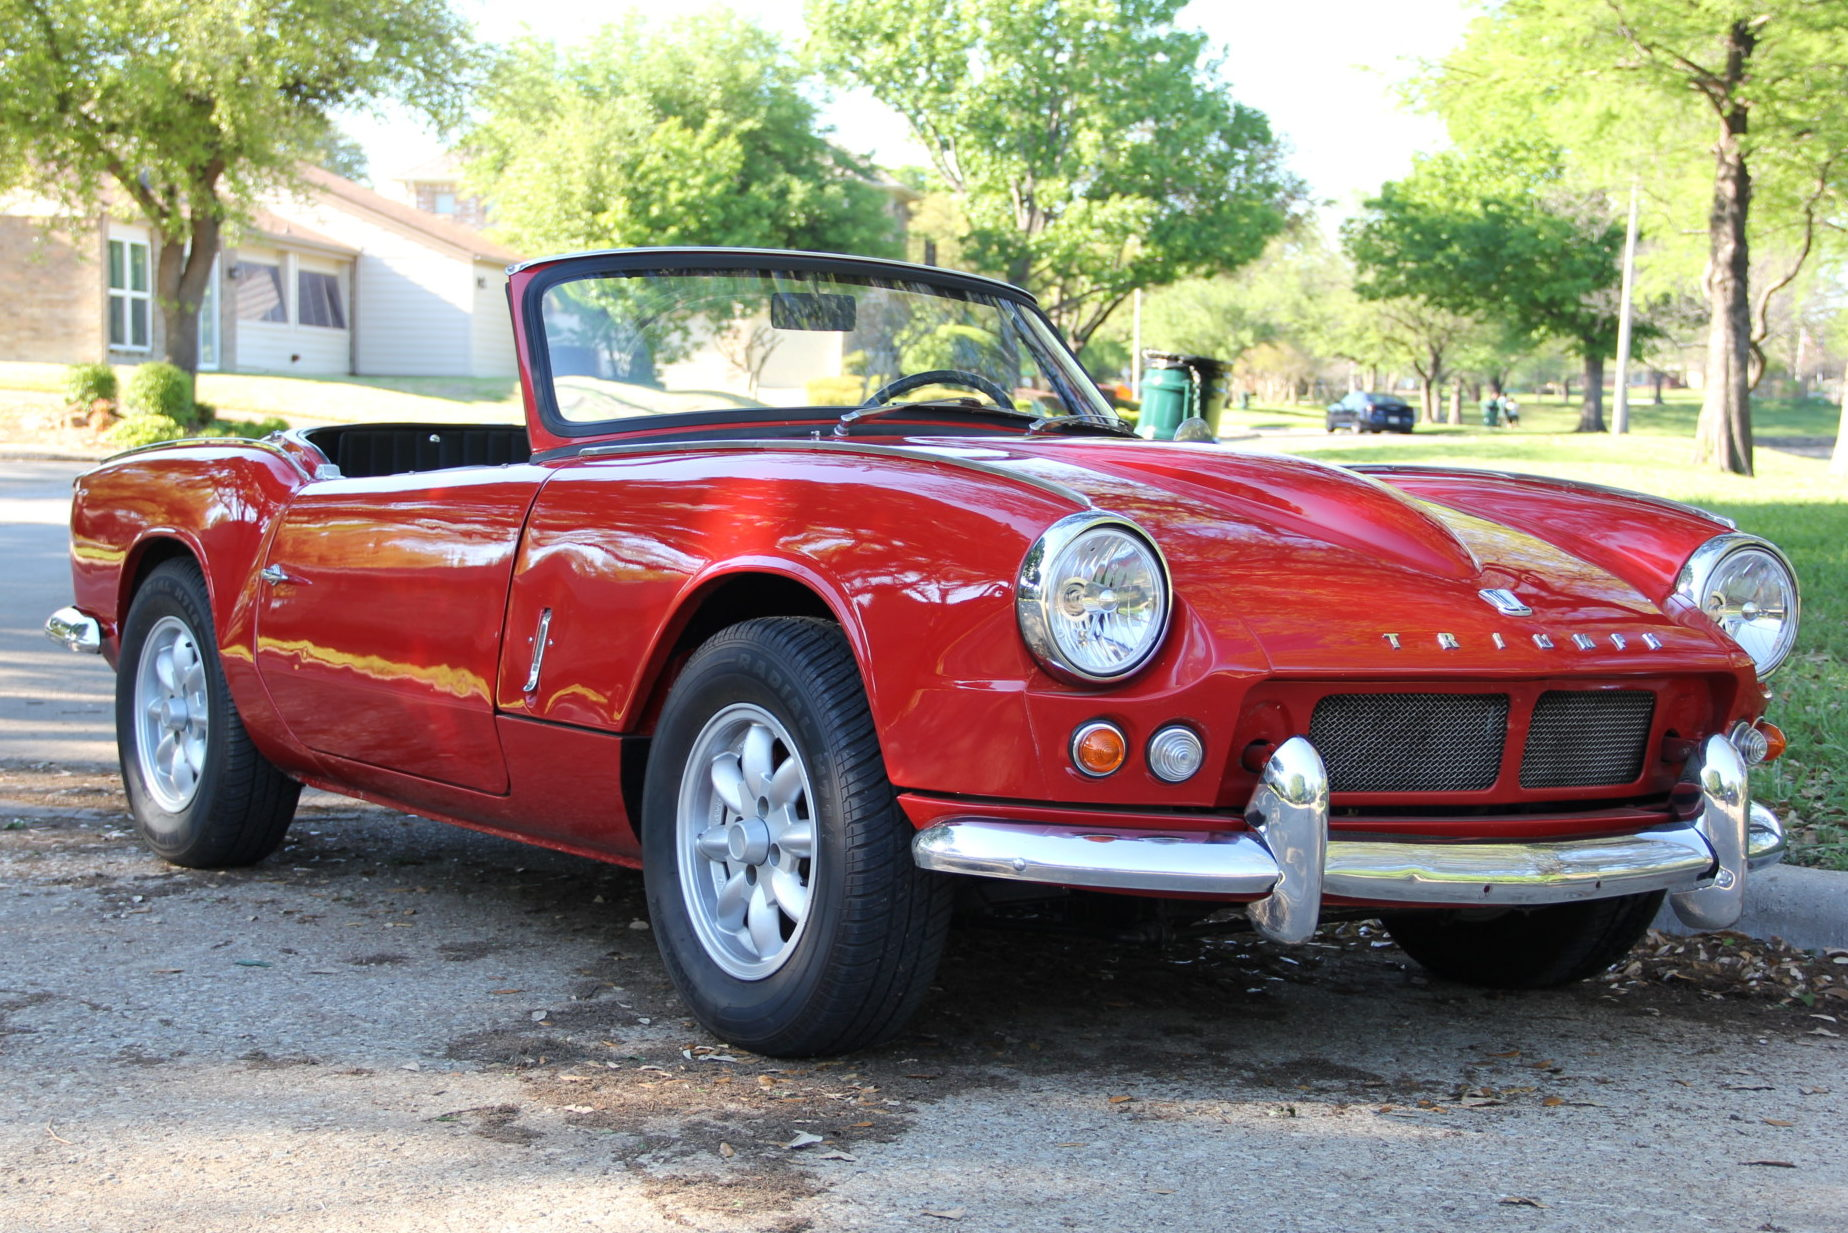 hight resolution of gt6 powered 1964 triumph spitfire for sale on bat auctions sold for 12 000 on may 8 2019 lot 18 649 bring a trailer